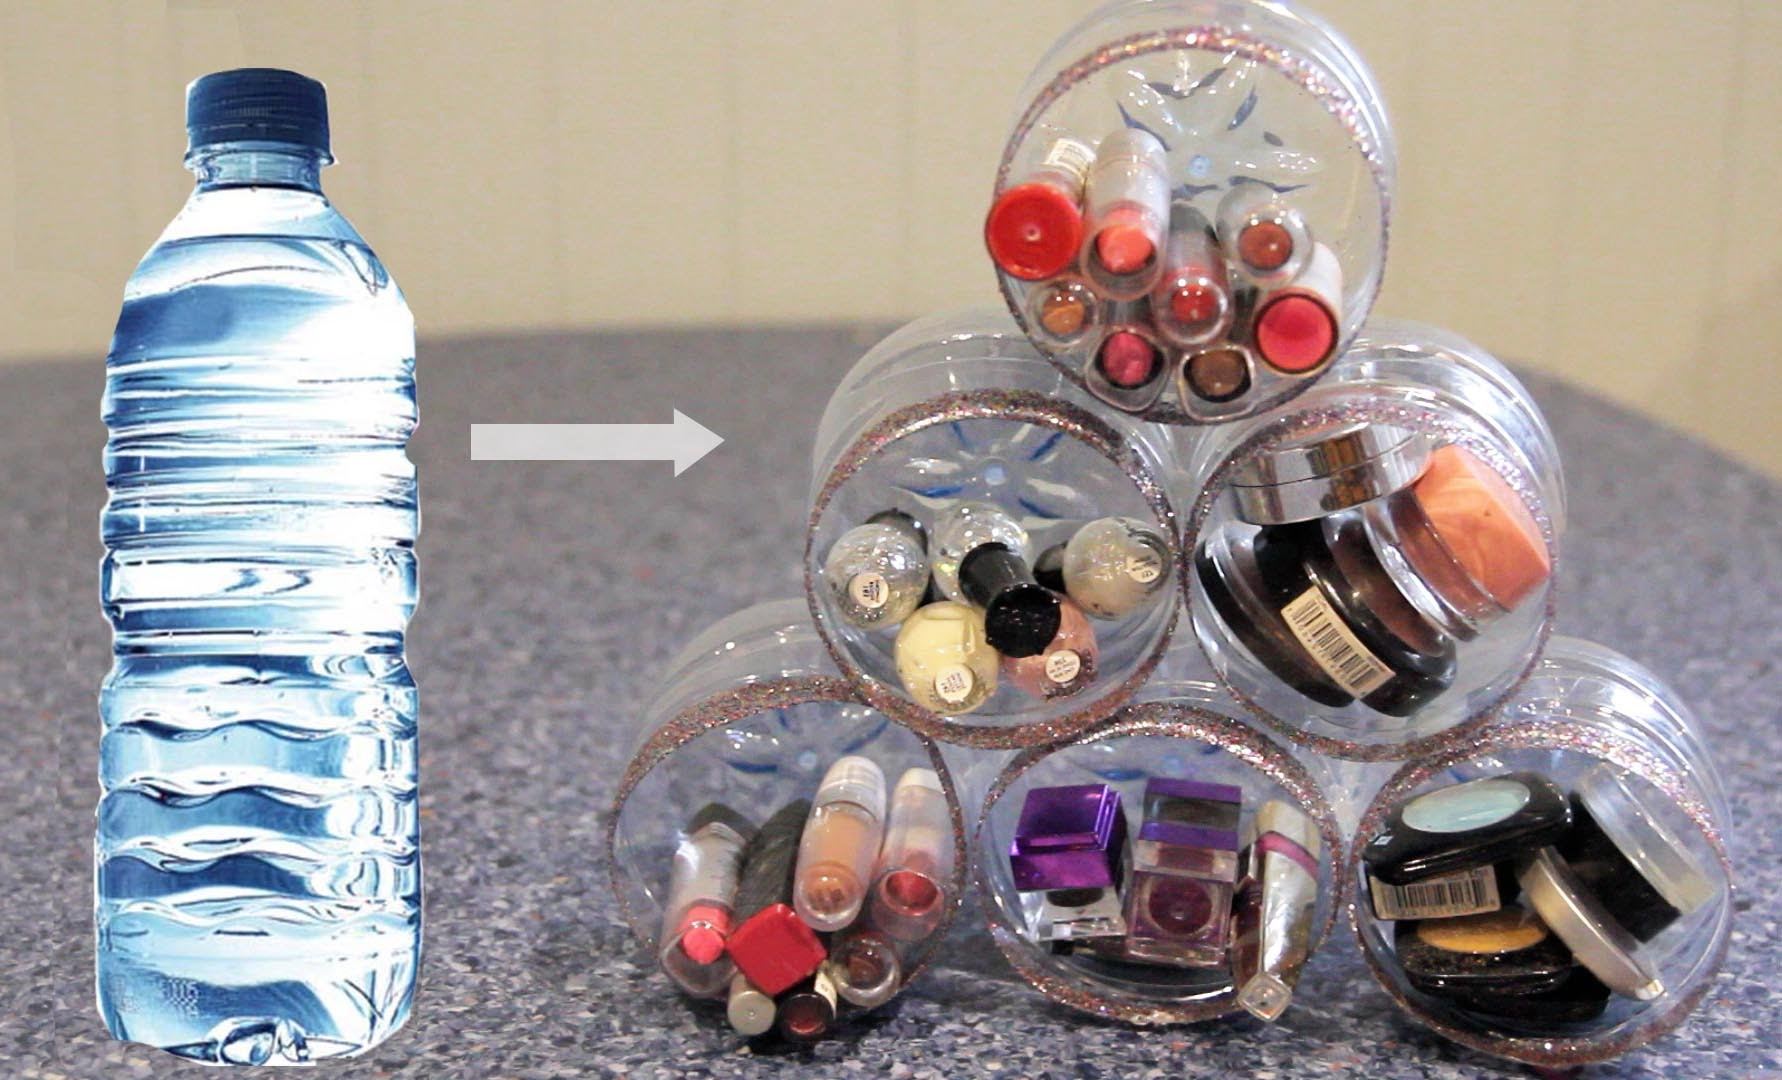 Cool DIY Projects Made With Plastic Bottles - She Recycles Bottles For A Brilliant Organizing Purpose (Easy!) - Best Easy Crafts and DIY Ideas Made With A Recycled Plastic Bottle - Jewlery, Home Decor, Planters, Craft Project Tutorials - Cheap Ways to Decorate and Creative DIY Gifts for Christmas Holidays - Fun Projects for Adults, Teens and Kids